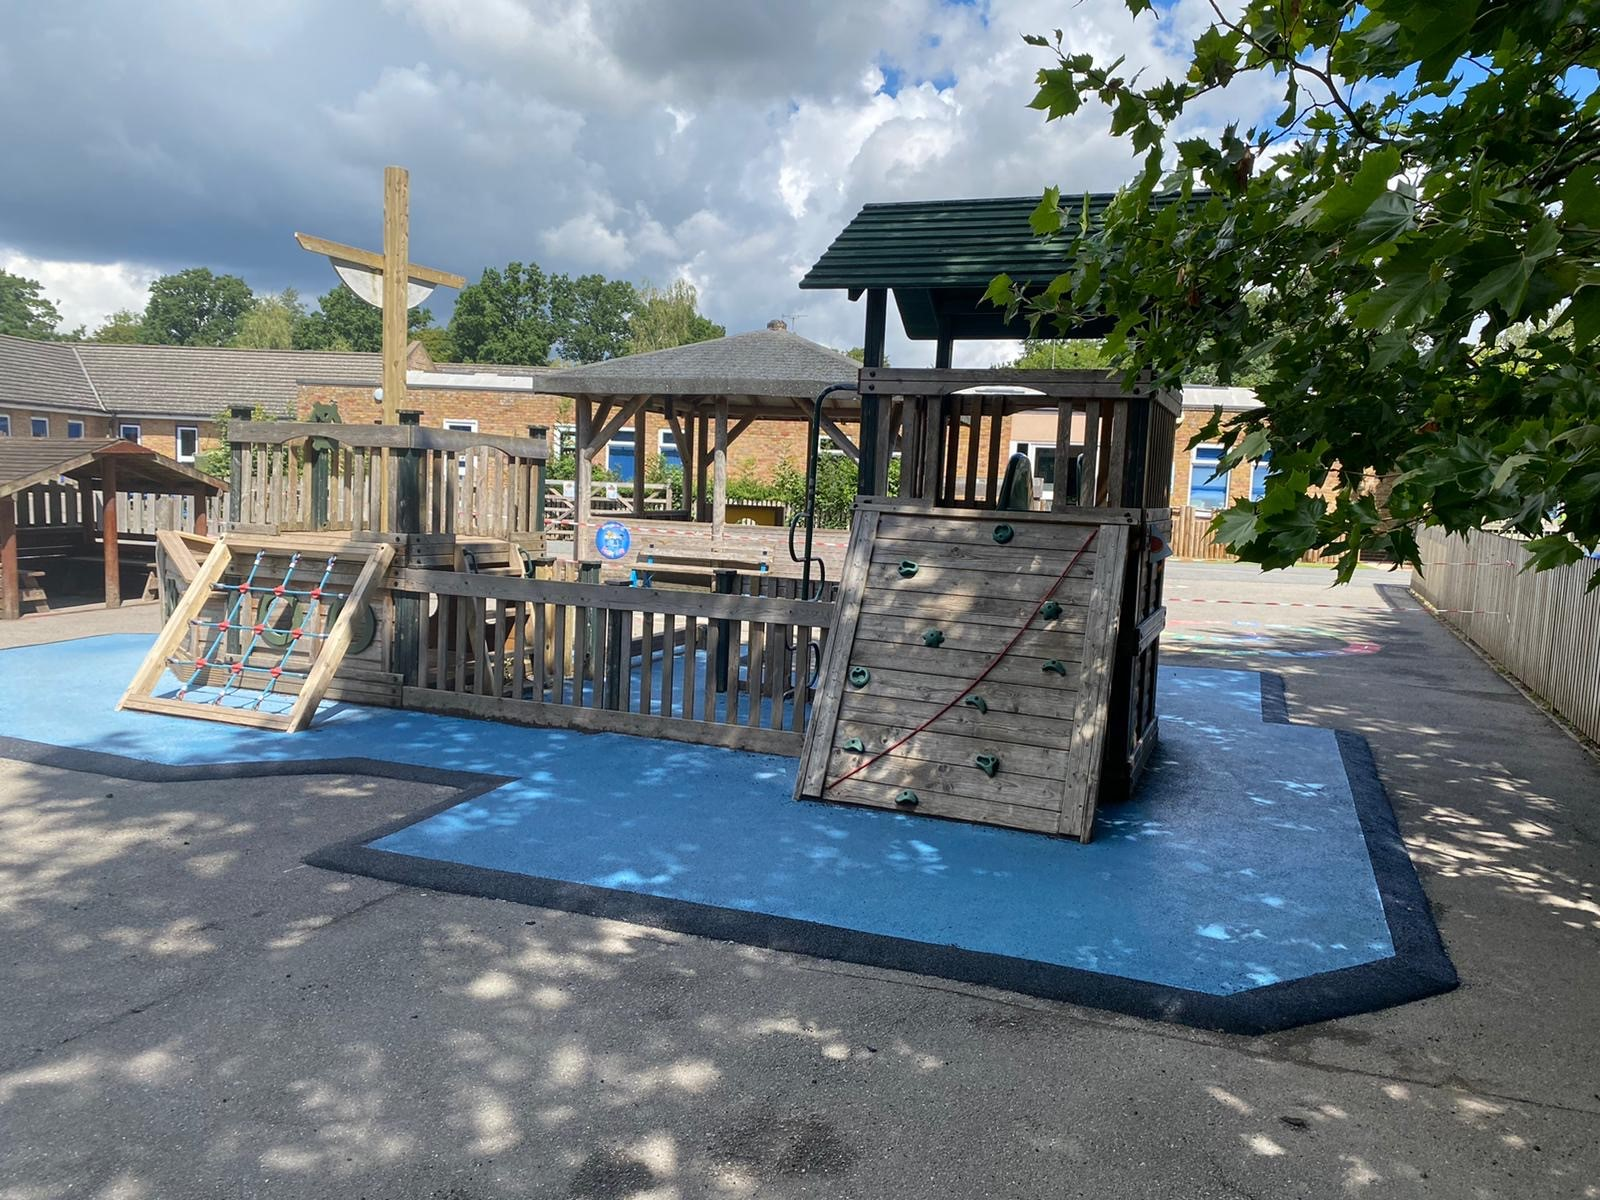 Wetpour repairs – Playspaces